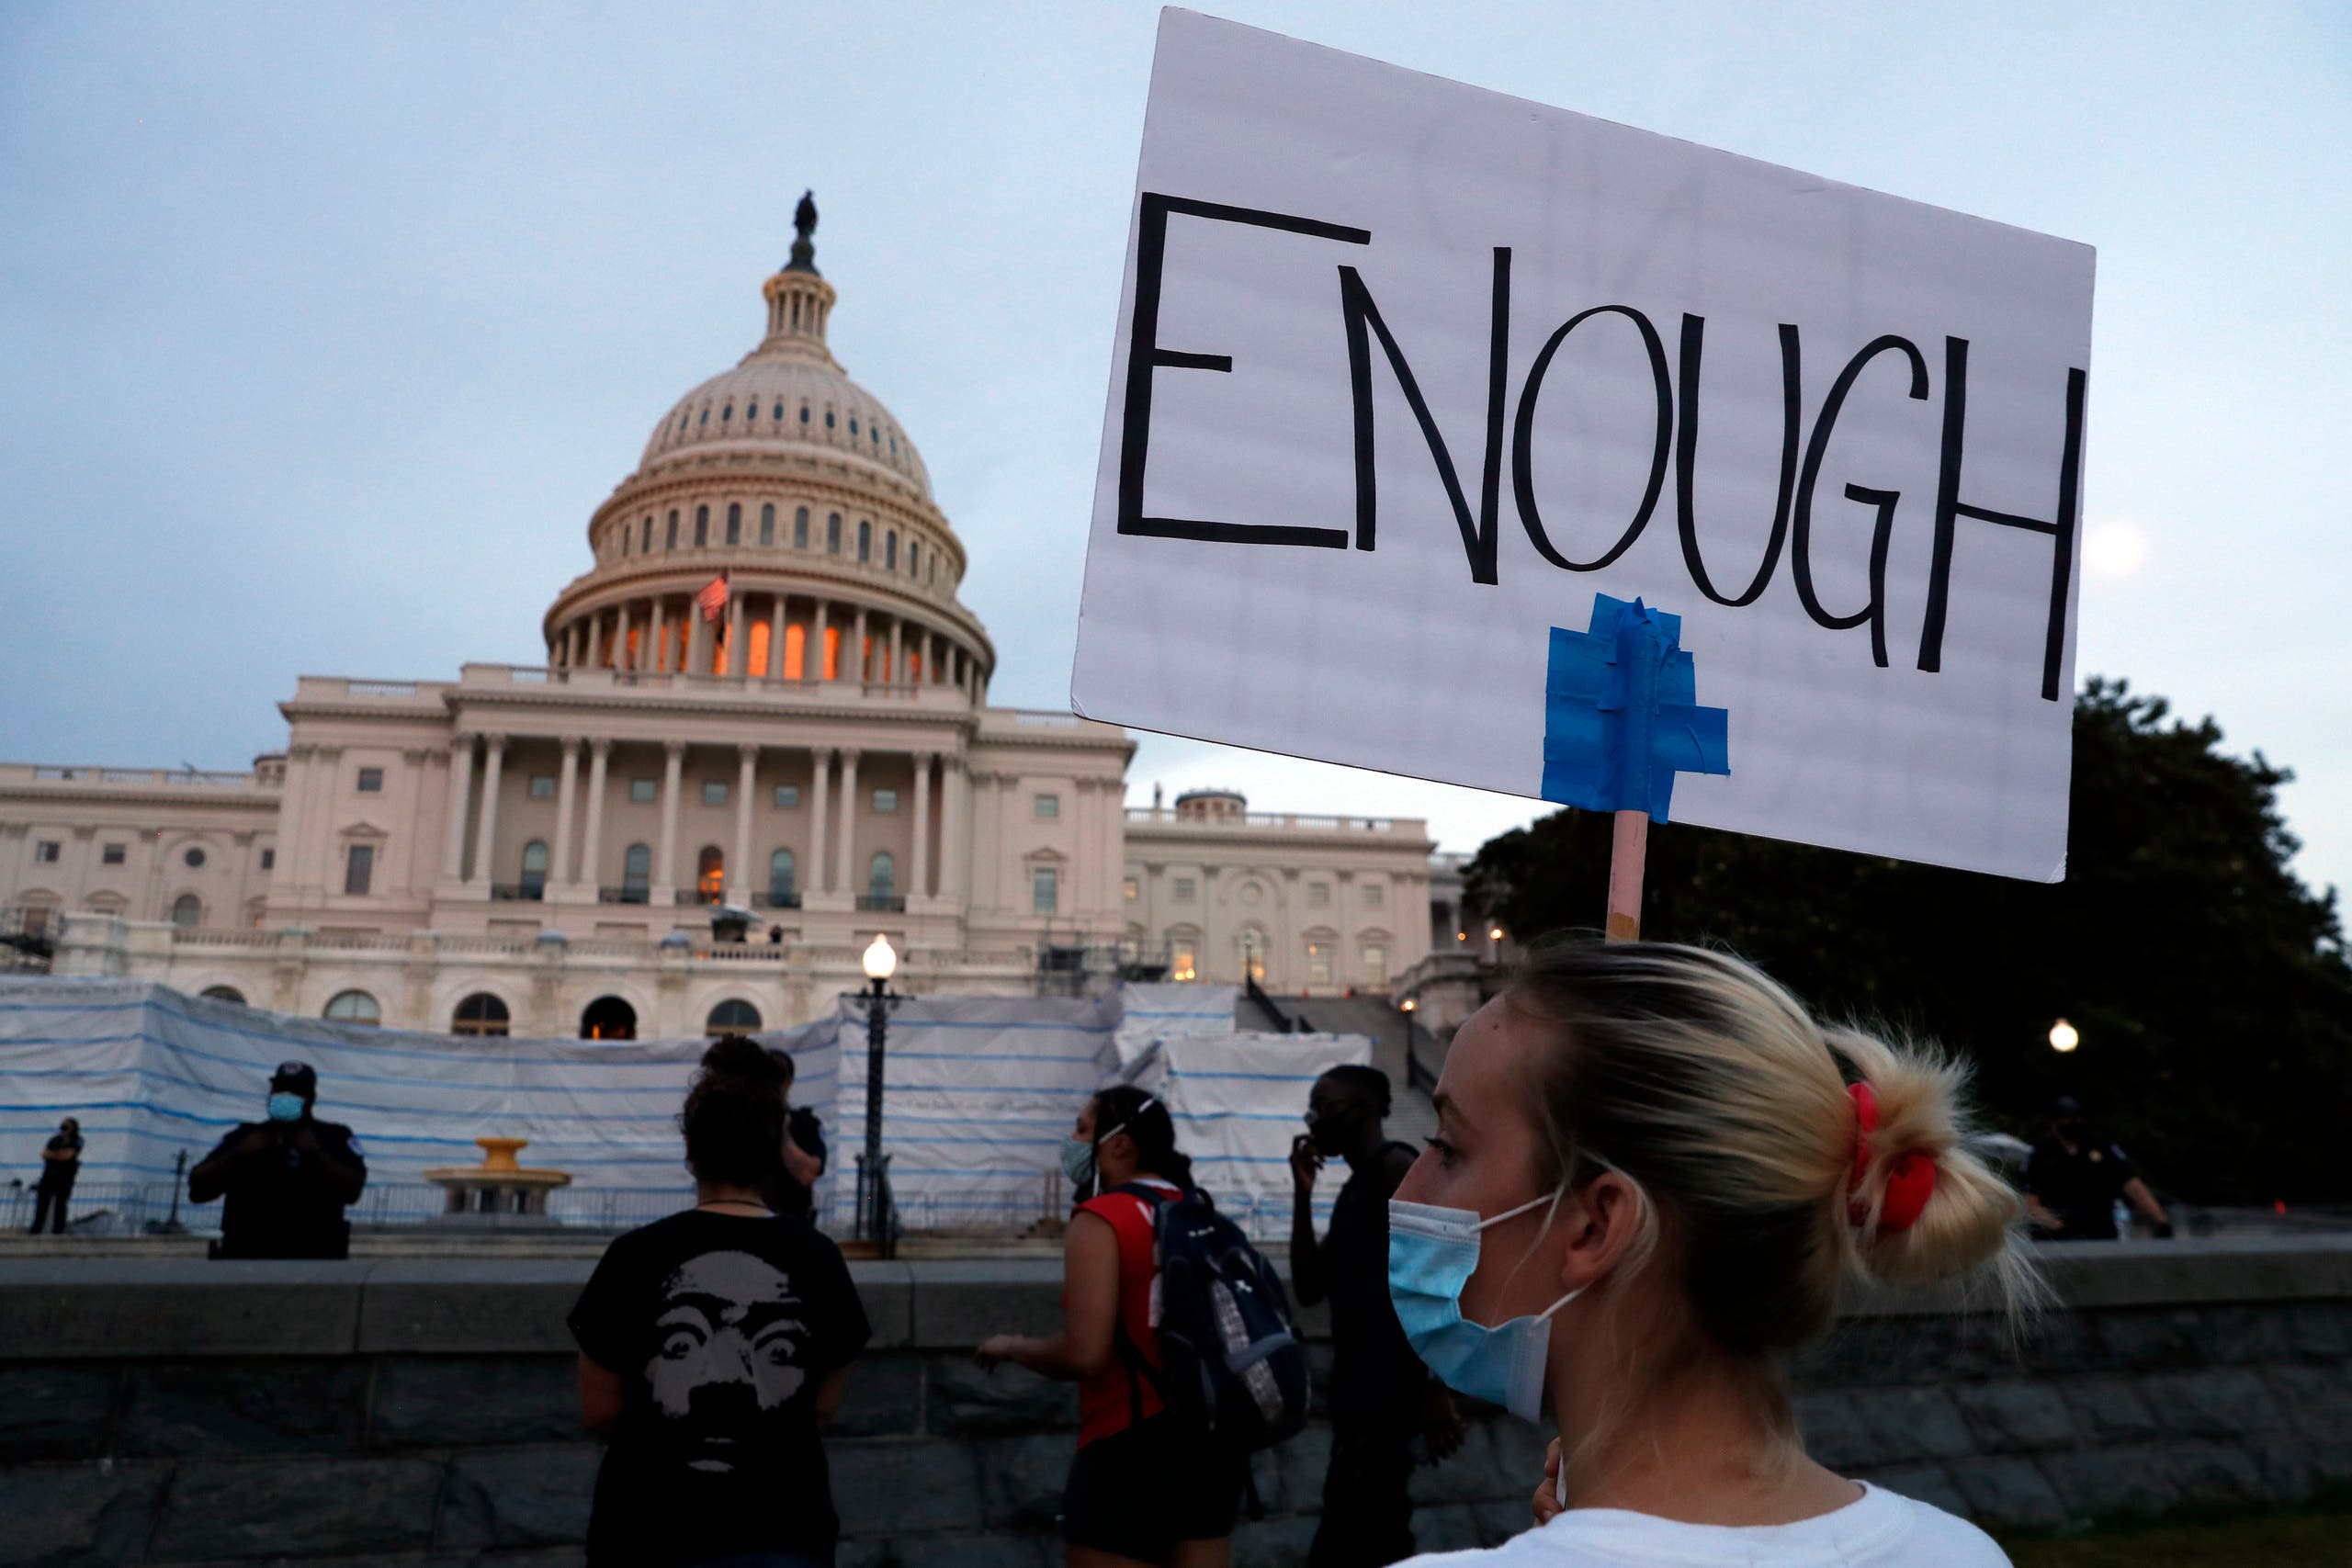 Demonstrators protest the death of George Floyd,on June 3, 2020, at the US Capitol in Washington. (AP)